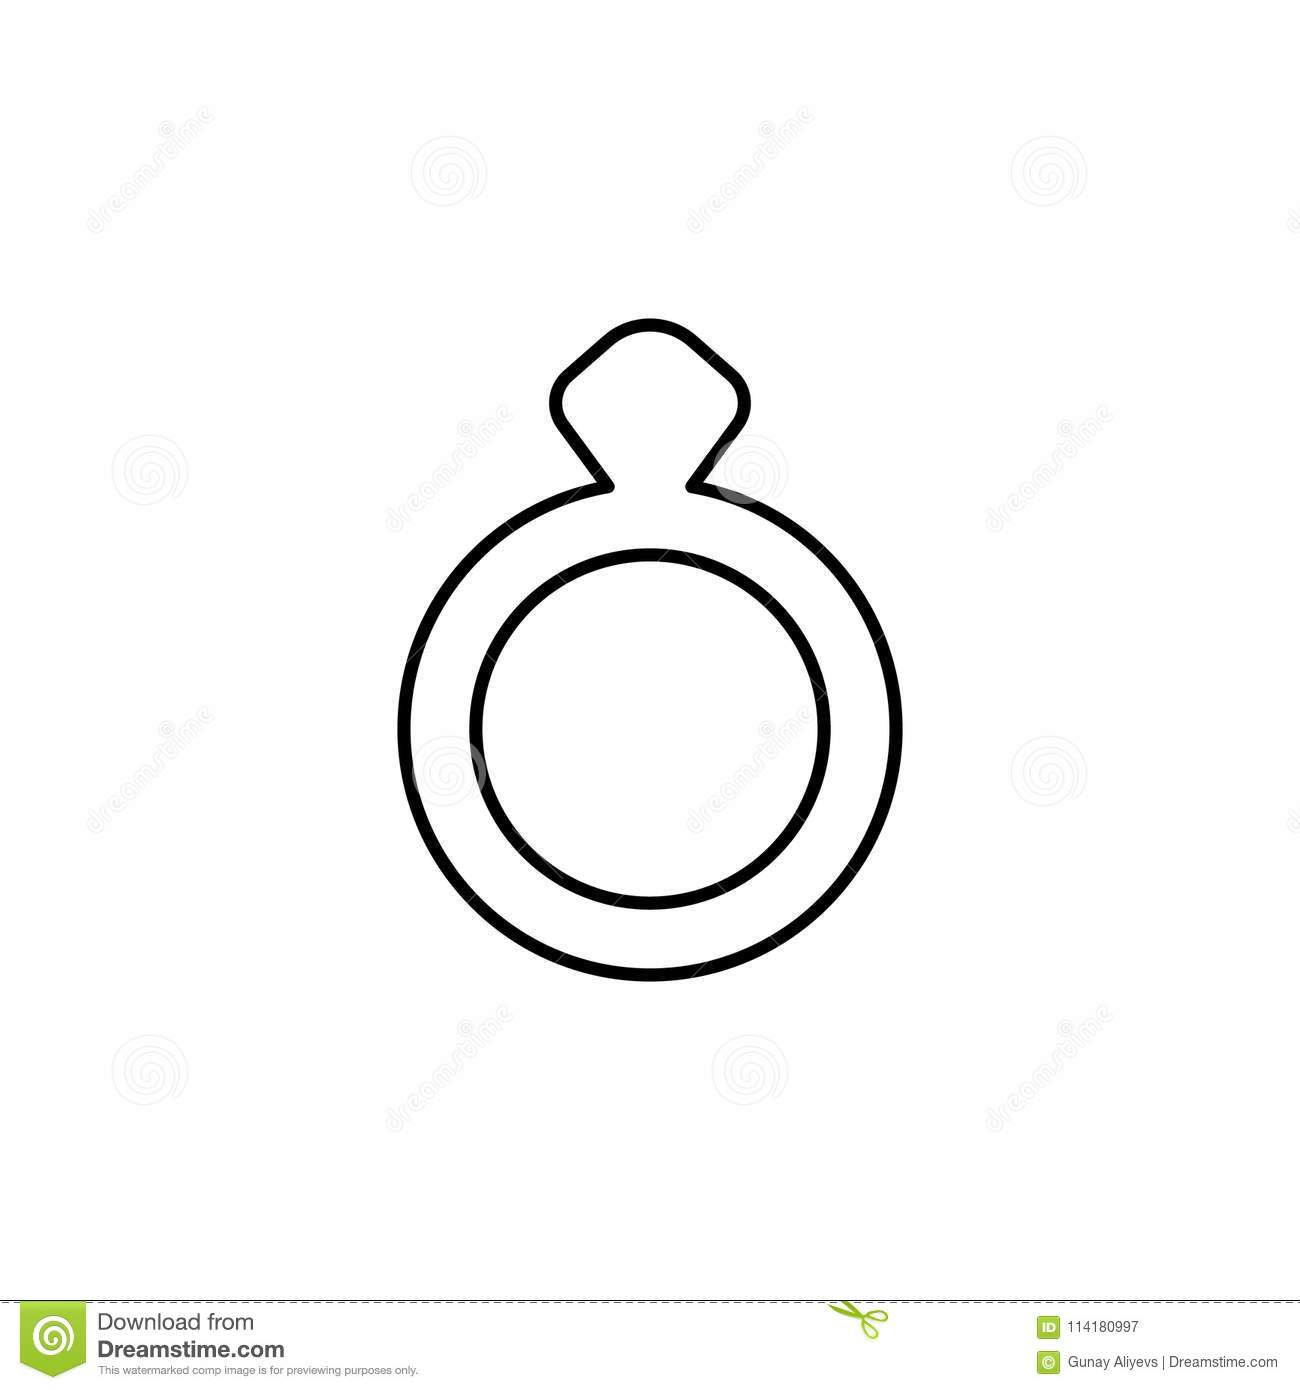 wedding ring icon. element of simple icon for websites, web design